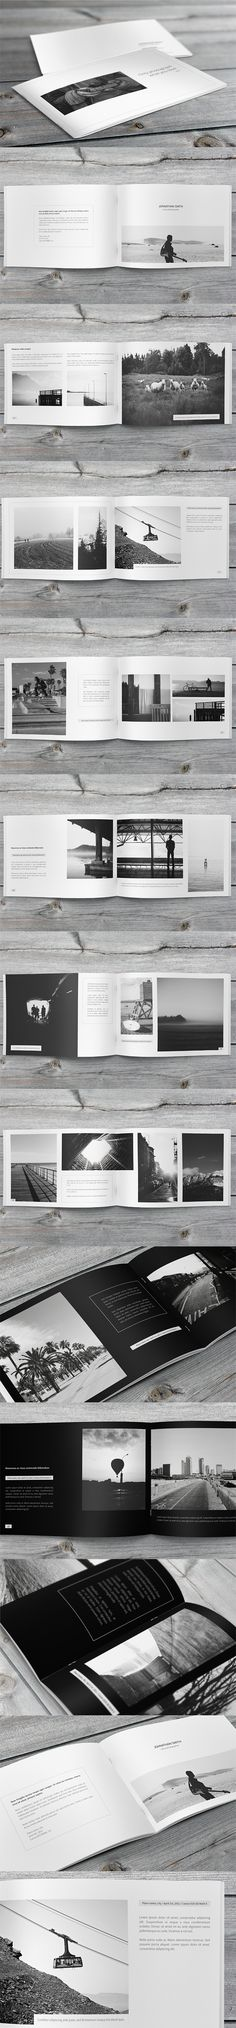 Minimalfolio Photography Portfolio A4 Brochure #4 on Behance